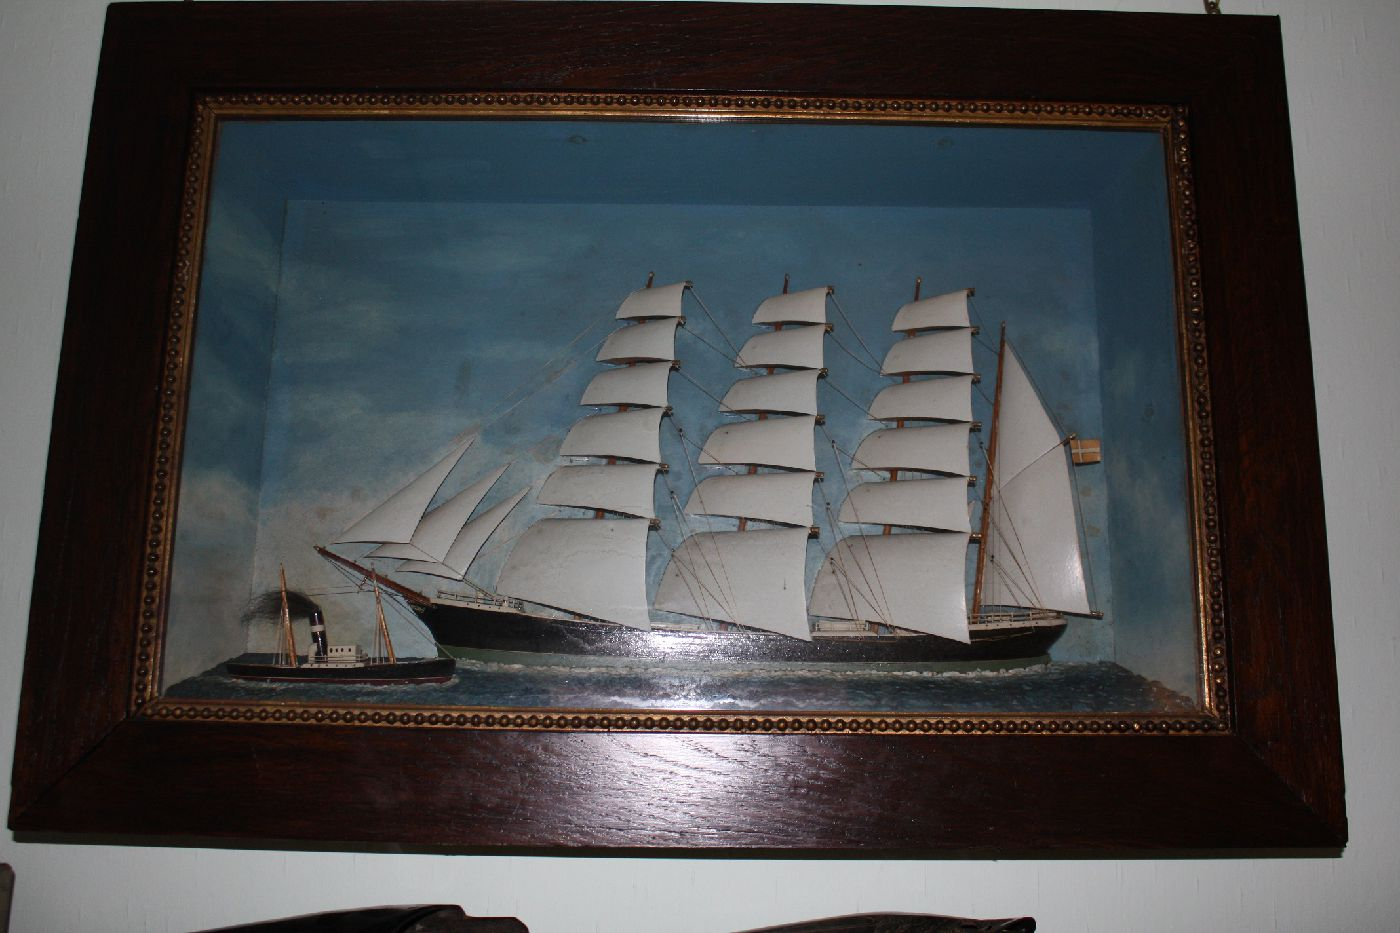 Antique wooden 1900 four mast sailing ship half model diorama, front glass display, ship with danish flag